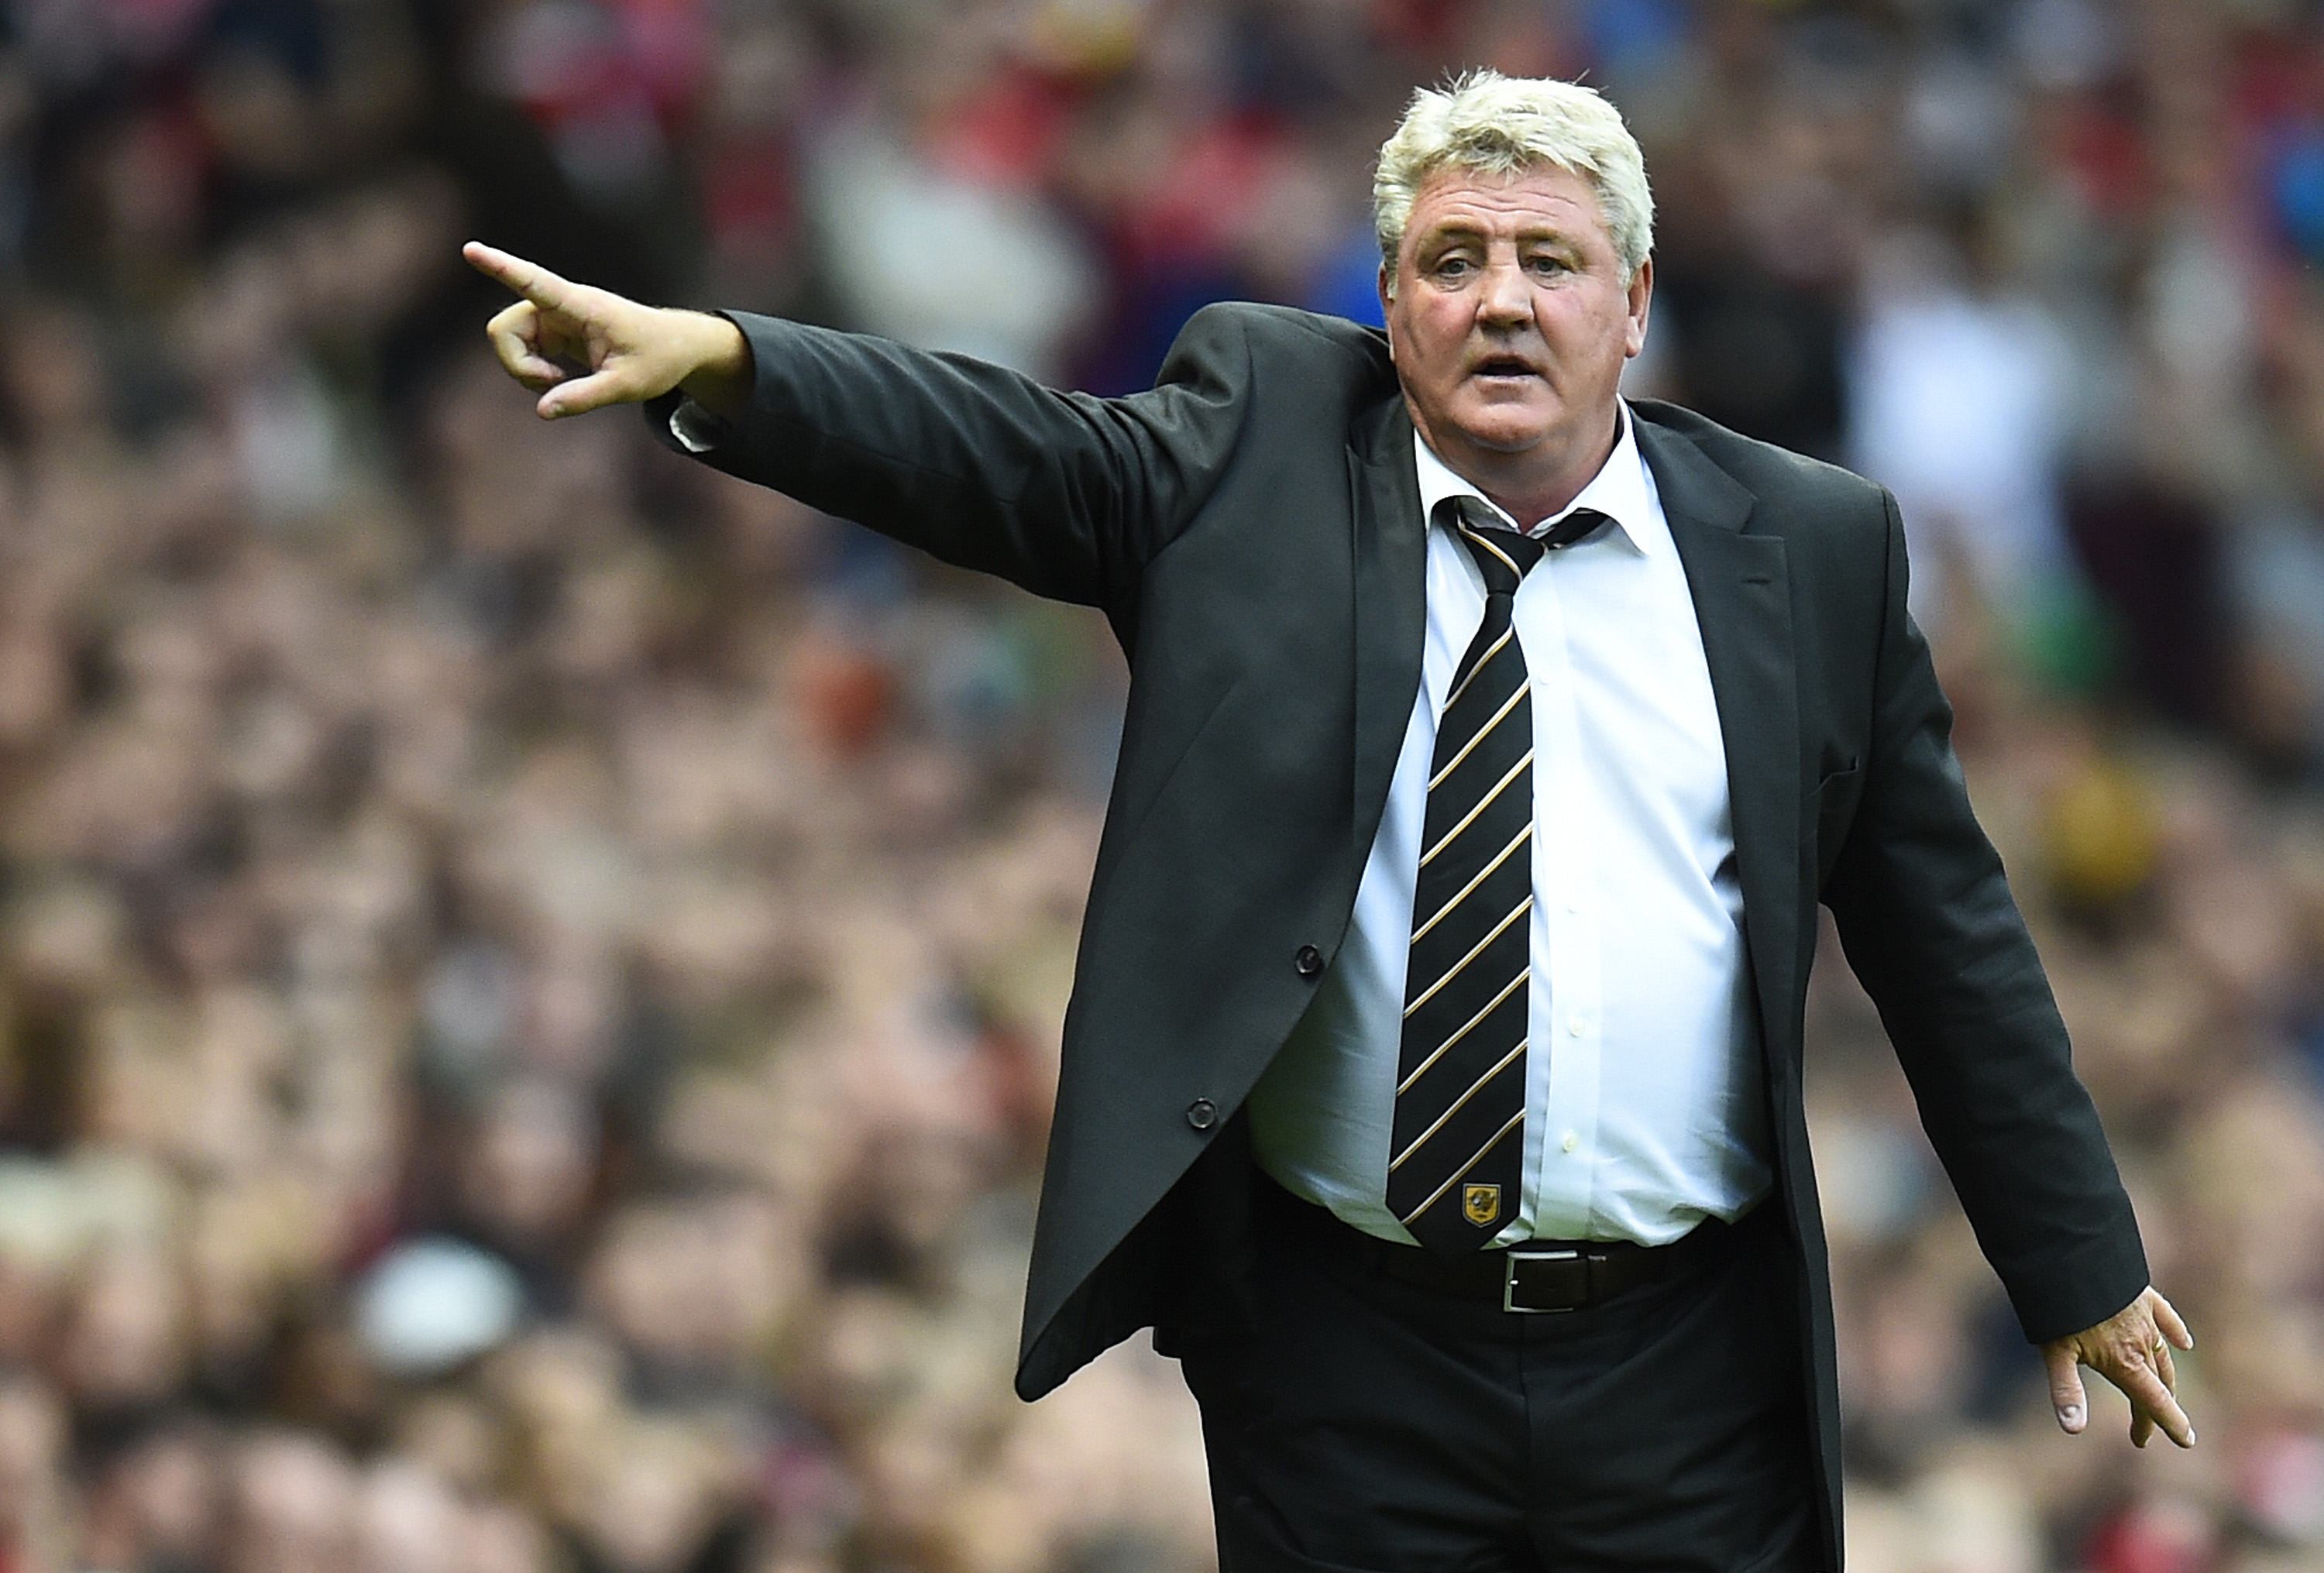 Steve Bruce resigns as manager of Hull City after missing out on England job